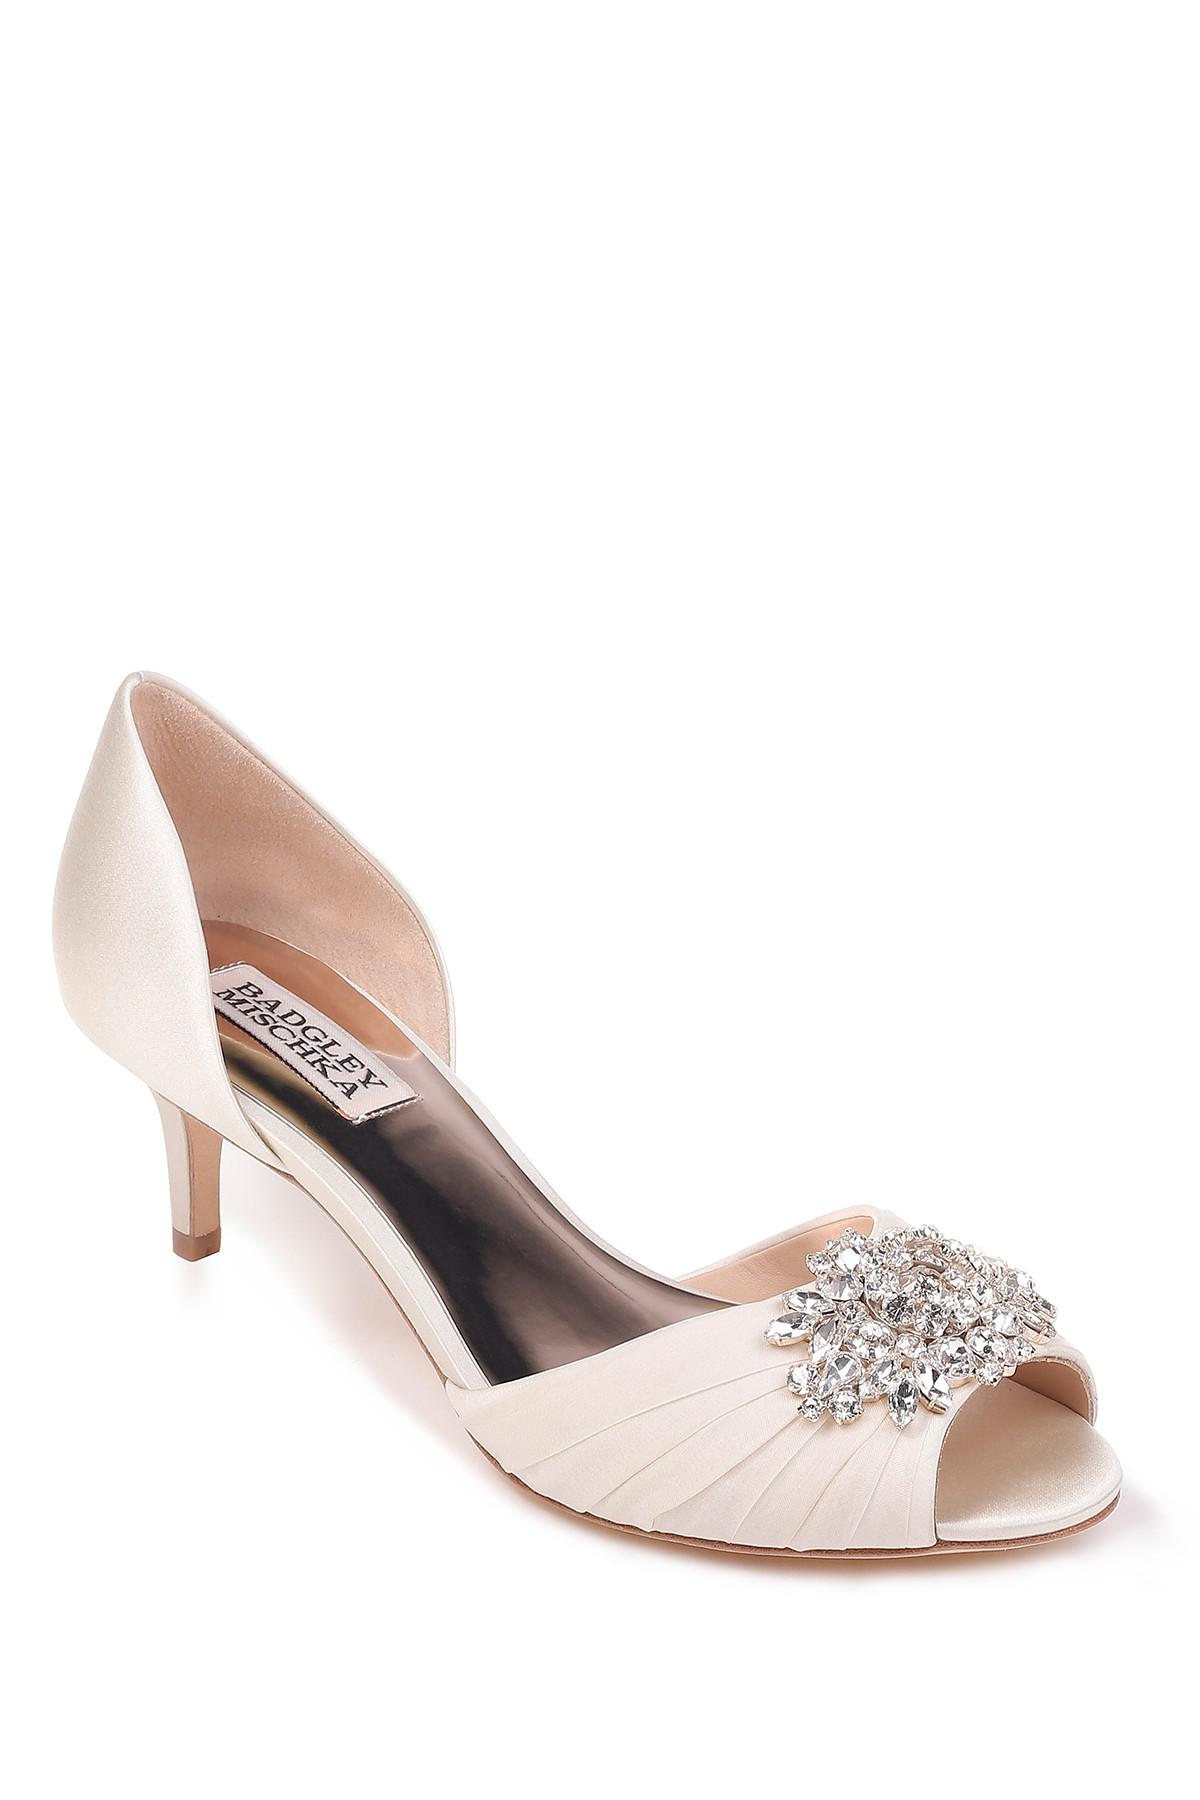 3dbf3774403 Lyst - Badgley Mischka Sabine Peep Toe Pump (women) in White